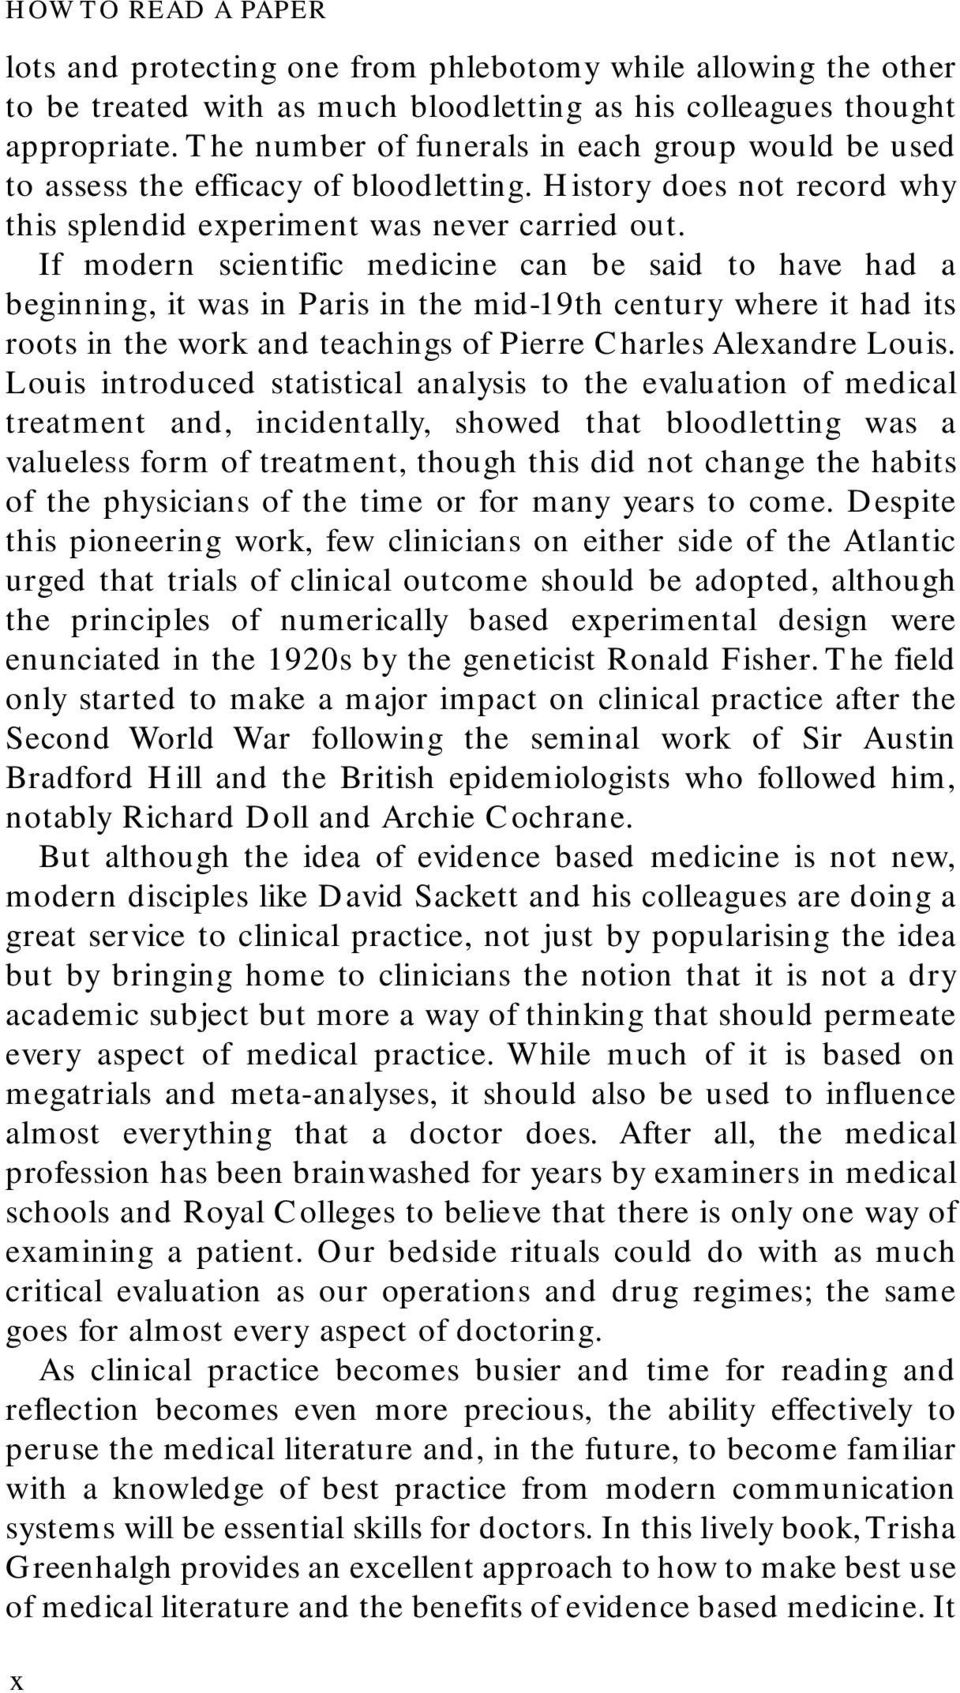 If modern scientific medicine can be said to have had a beginning, it was in Paris in the mid-19th century where it had its roots in the work and teachings of Pierre Charles Alexandre Louis.